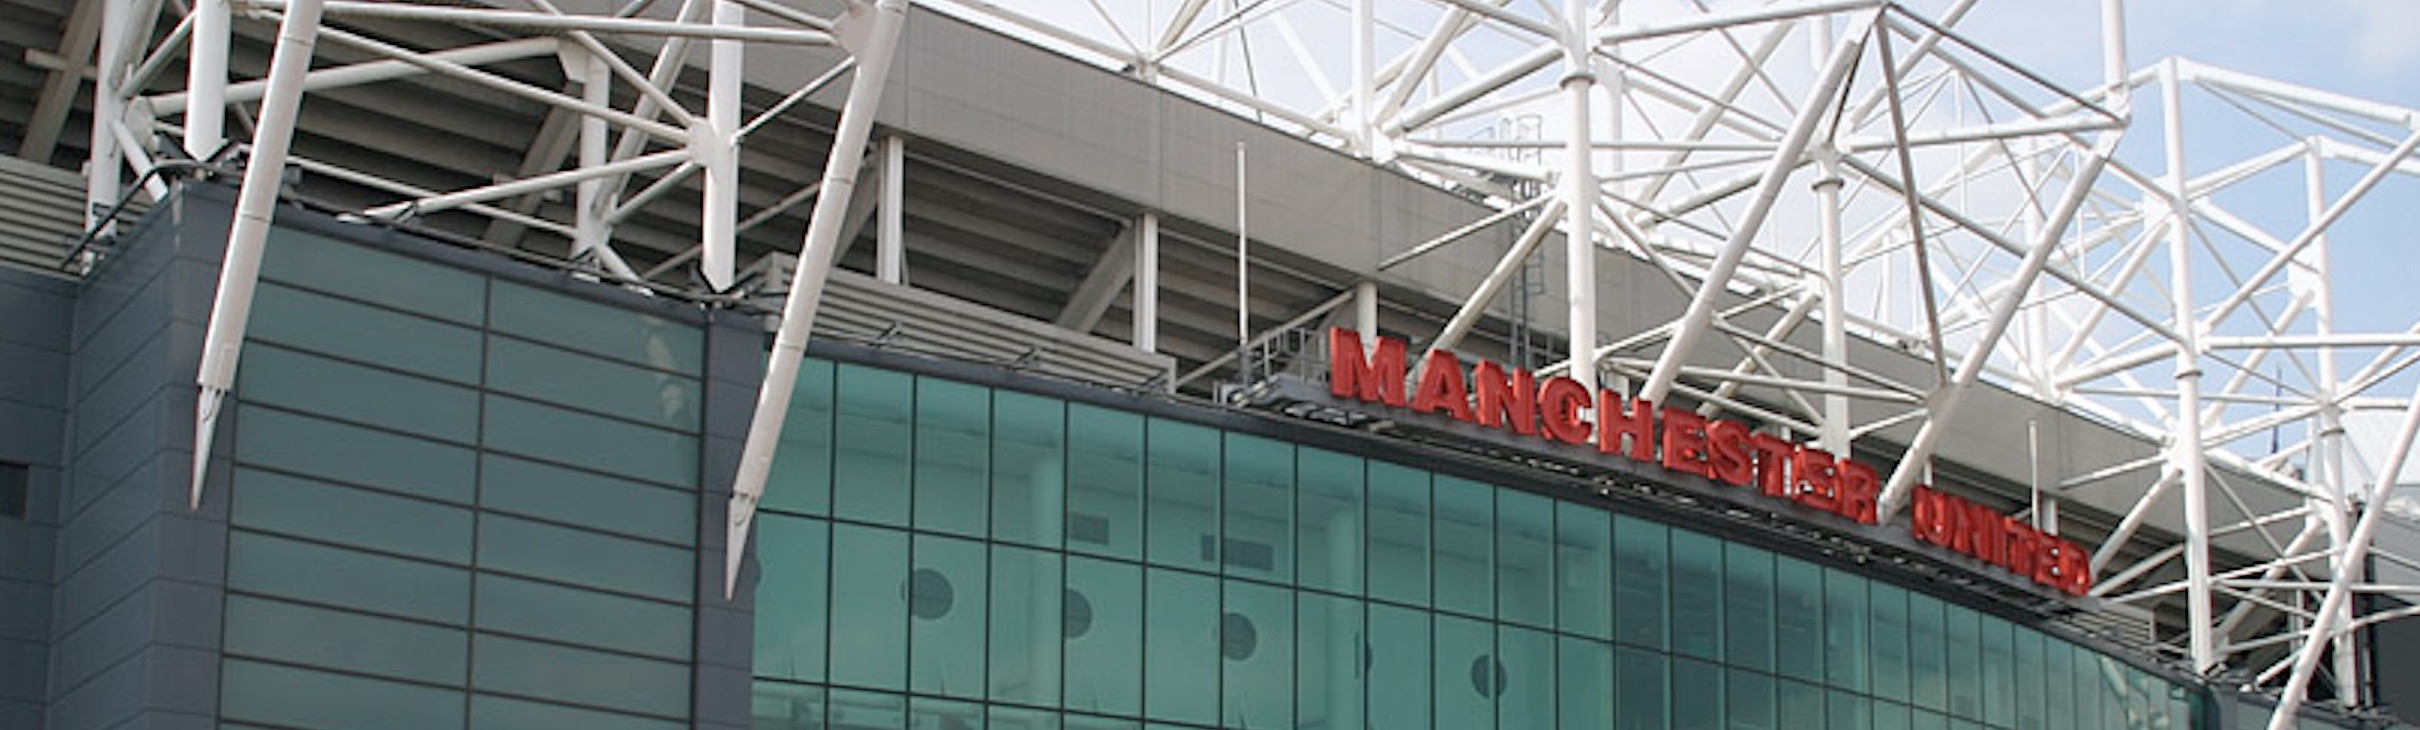 Man United V Burnley - Tuesday Night Stay